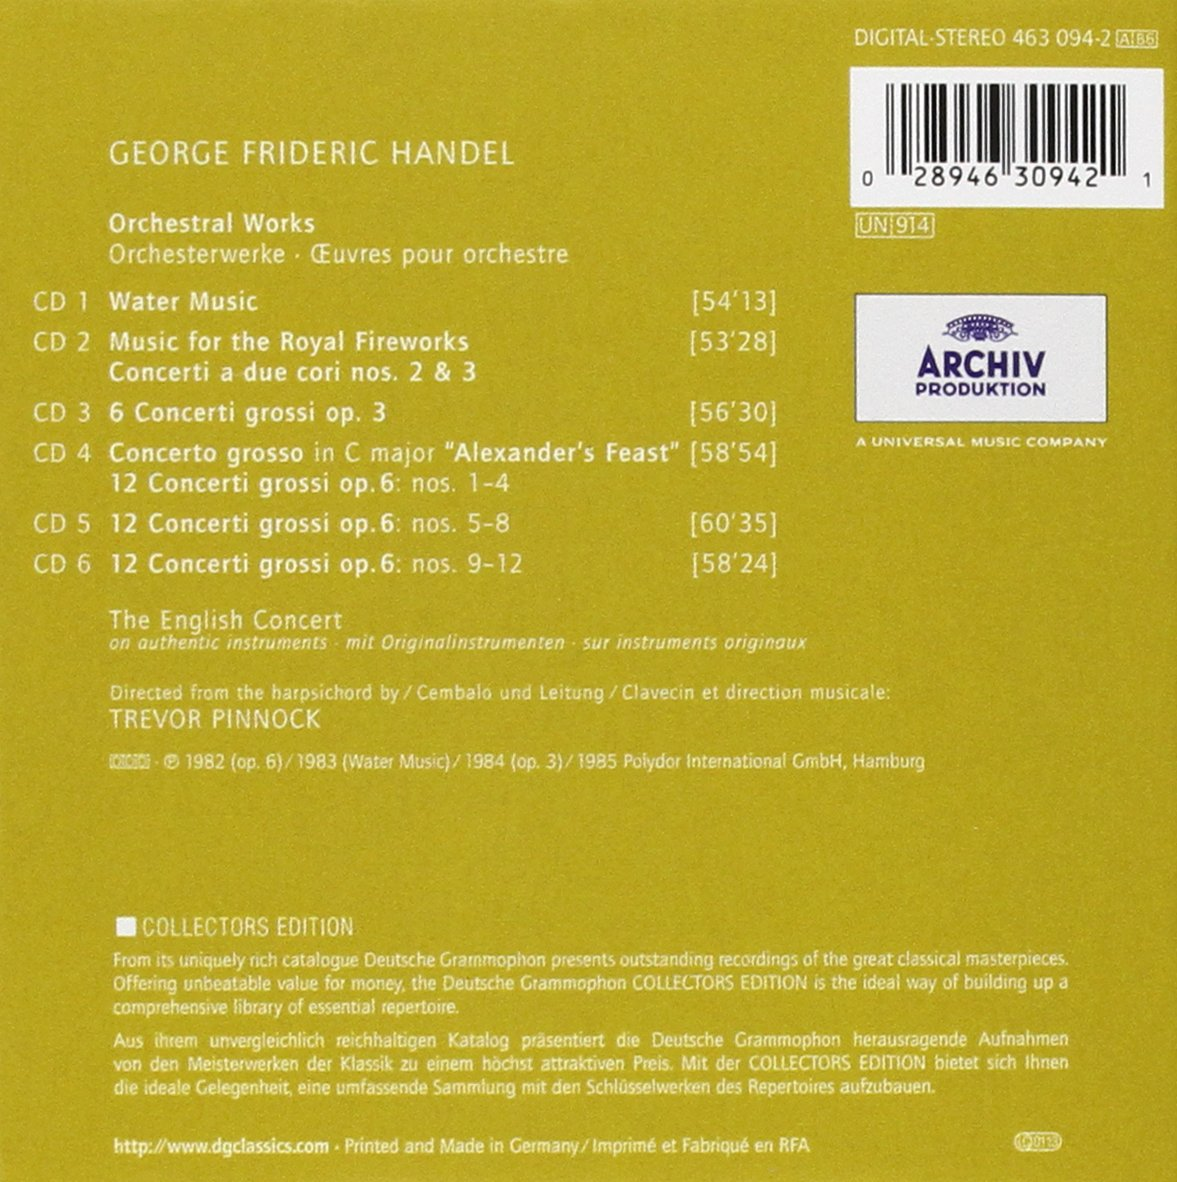 George Frideric Handel, Trevor Pinnock, The English Concert - Handel: Orchestral Works - Amazon.com Music